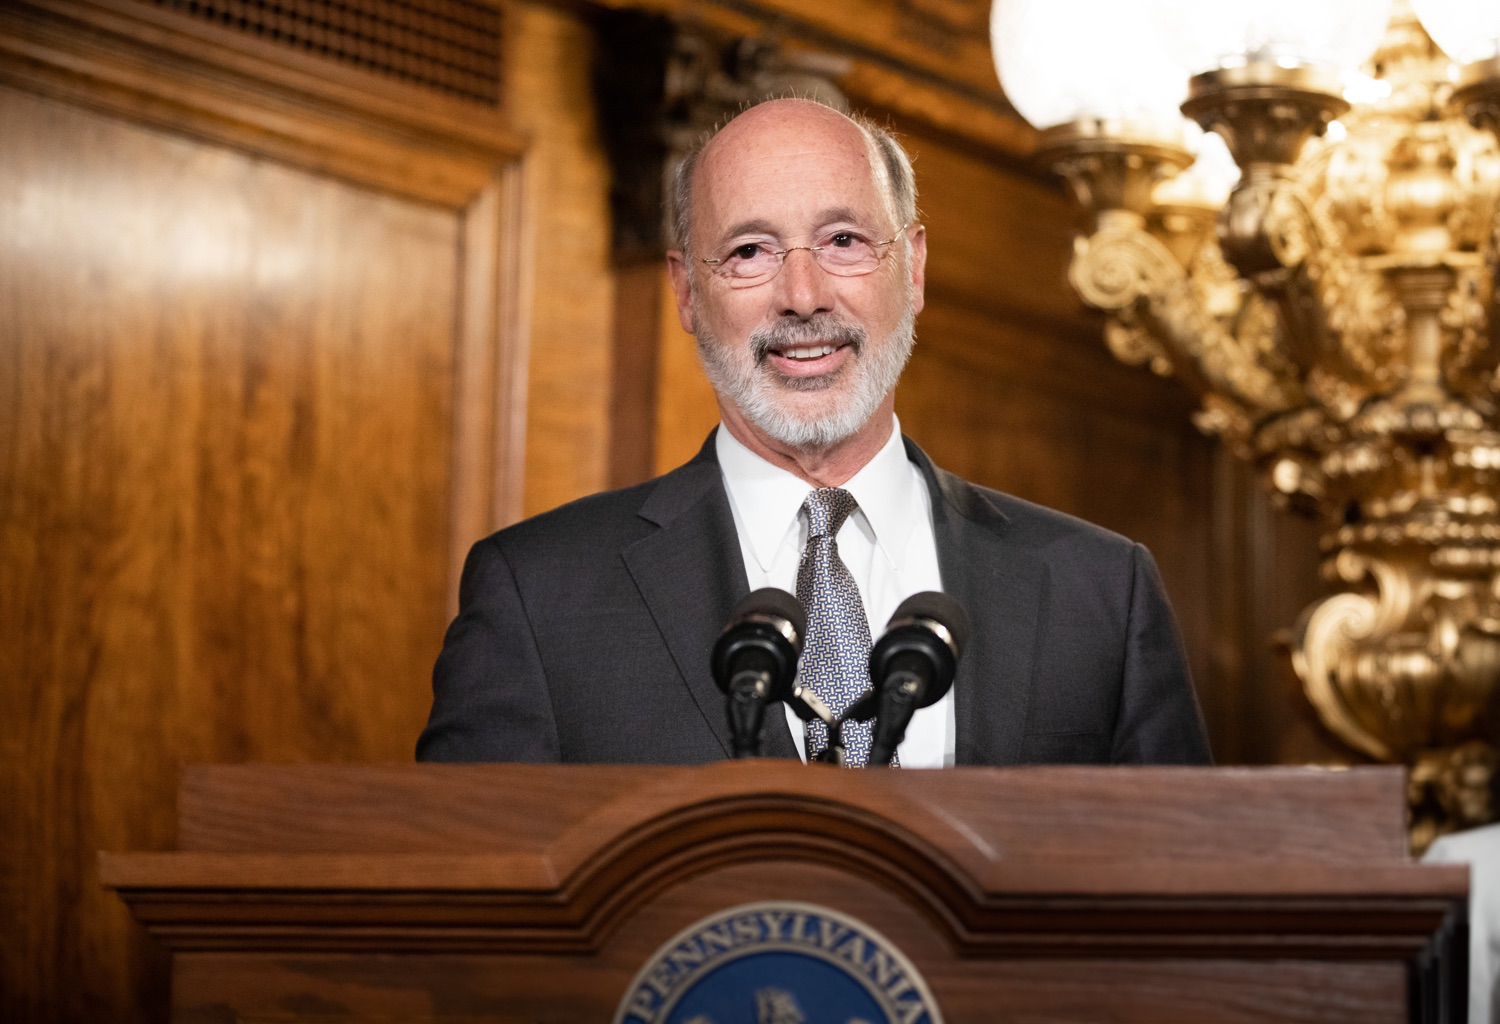 "<a href=""https://filesource.wostreaming.net/commonwealthofpa/photo/17554_gov_voter_reform_bill_dz_002.jpg"" target=""_blank"">⇣ Download Photo<br></a>Harrisburg, PA  Governor Tom Wolf speaks at the Election Reform Bill signing.  Governor Wolf made voting more convenient and secure by signing Act 77 of 2019, the most significant improvement to Pennsylvanias elections in more than 80 years. The bipartisan compromise legislation takes effect for the April 2020 primary election and makes Pennsylvania a national leader with voter-friendly election reforms."